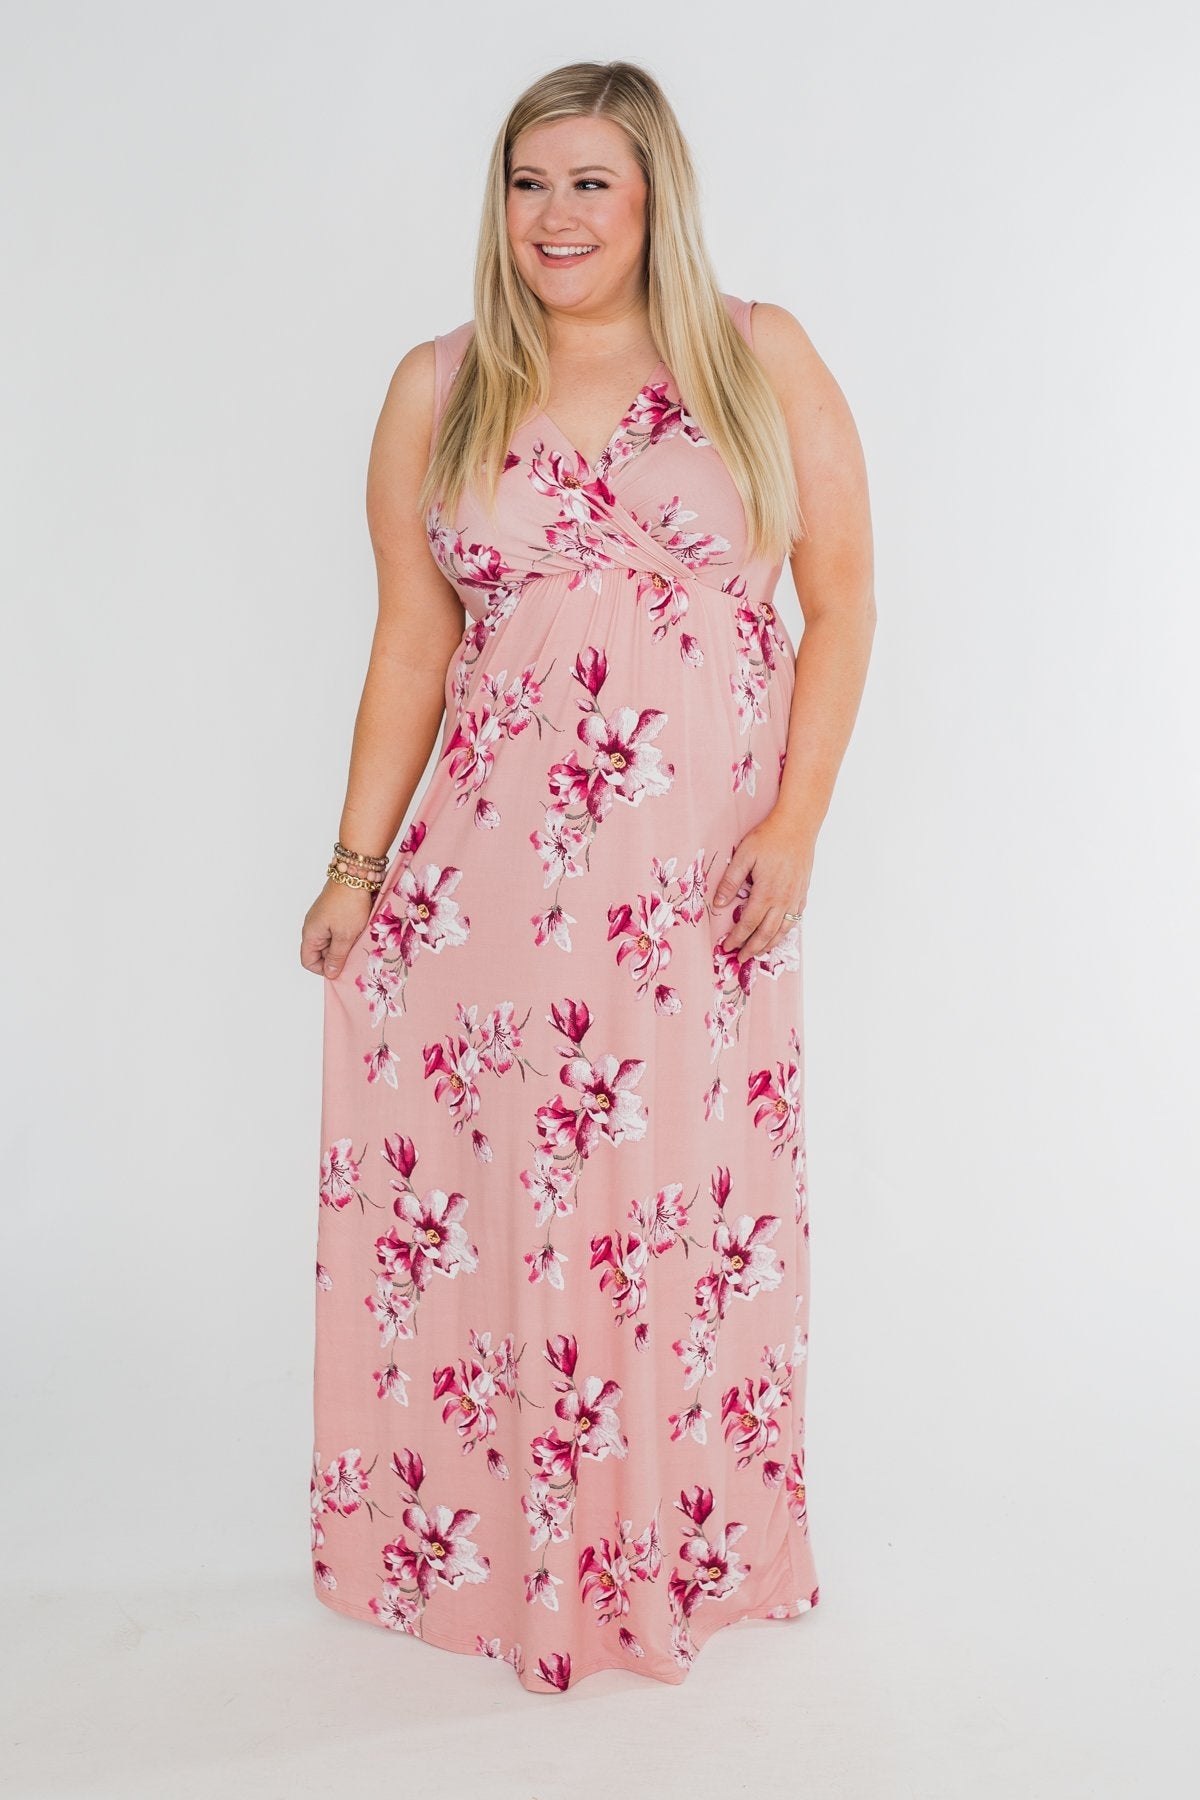 Daydreaming in Floral V-Neck Maxi Dress- Soft Pink